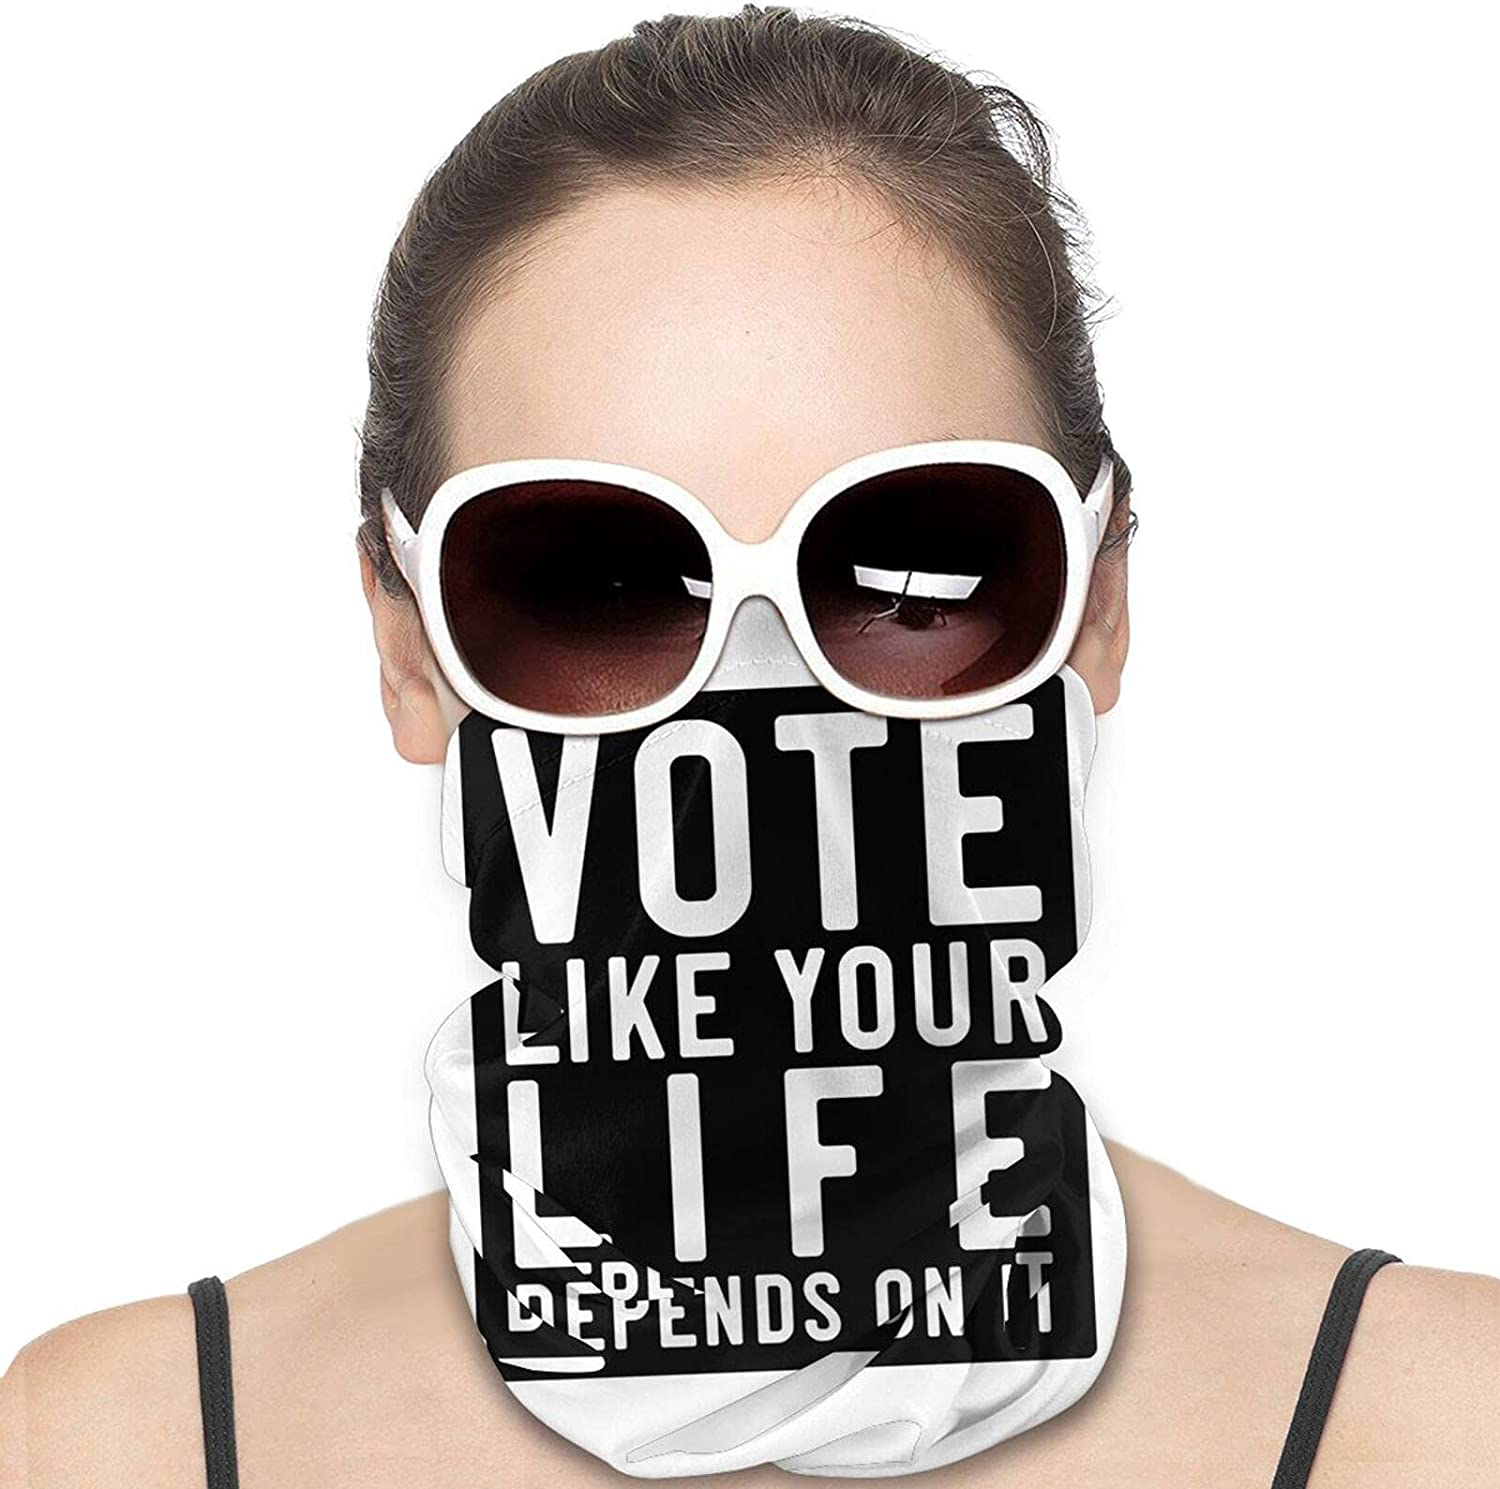 Vote Like Your Life Depends On It Round Neck Gaiter Bandnas Face Cover Uv Protection Prevent bask in Ice Scarf Headbands Perfect for Motorcycle Cycling Running Festival Raves Outdoors